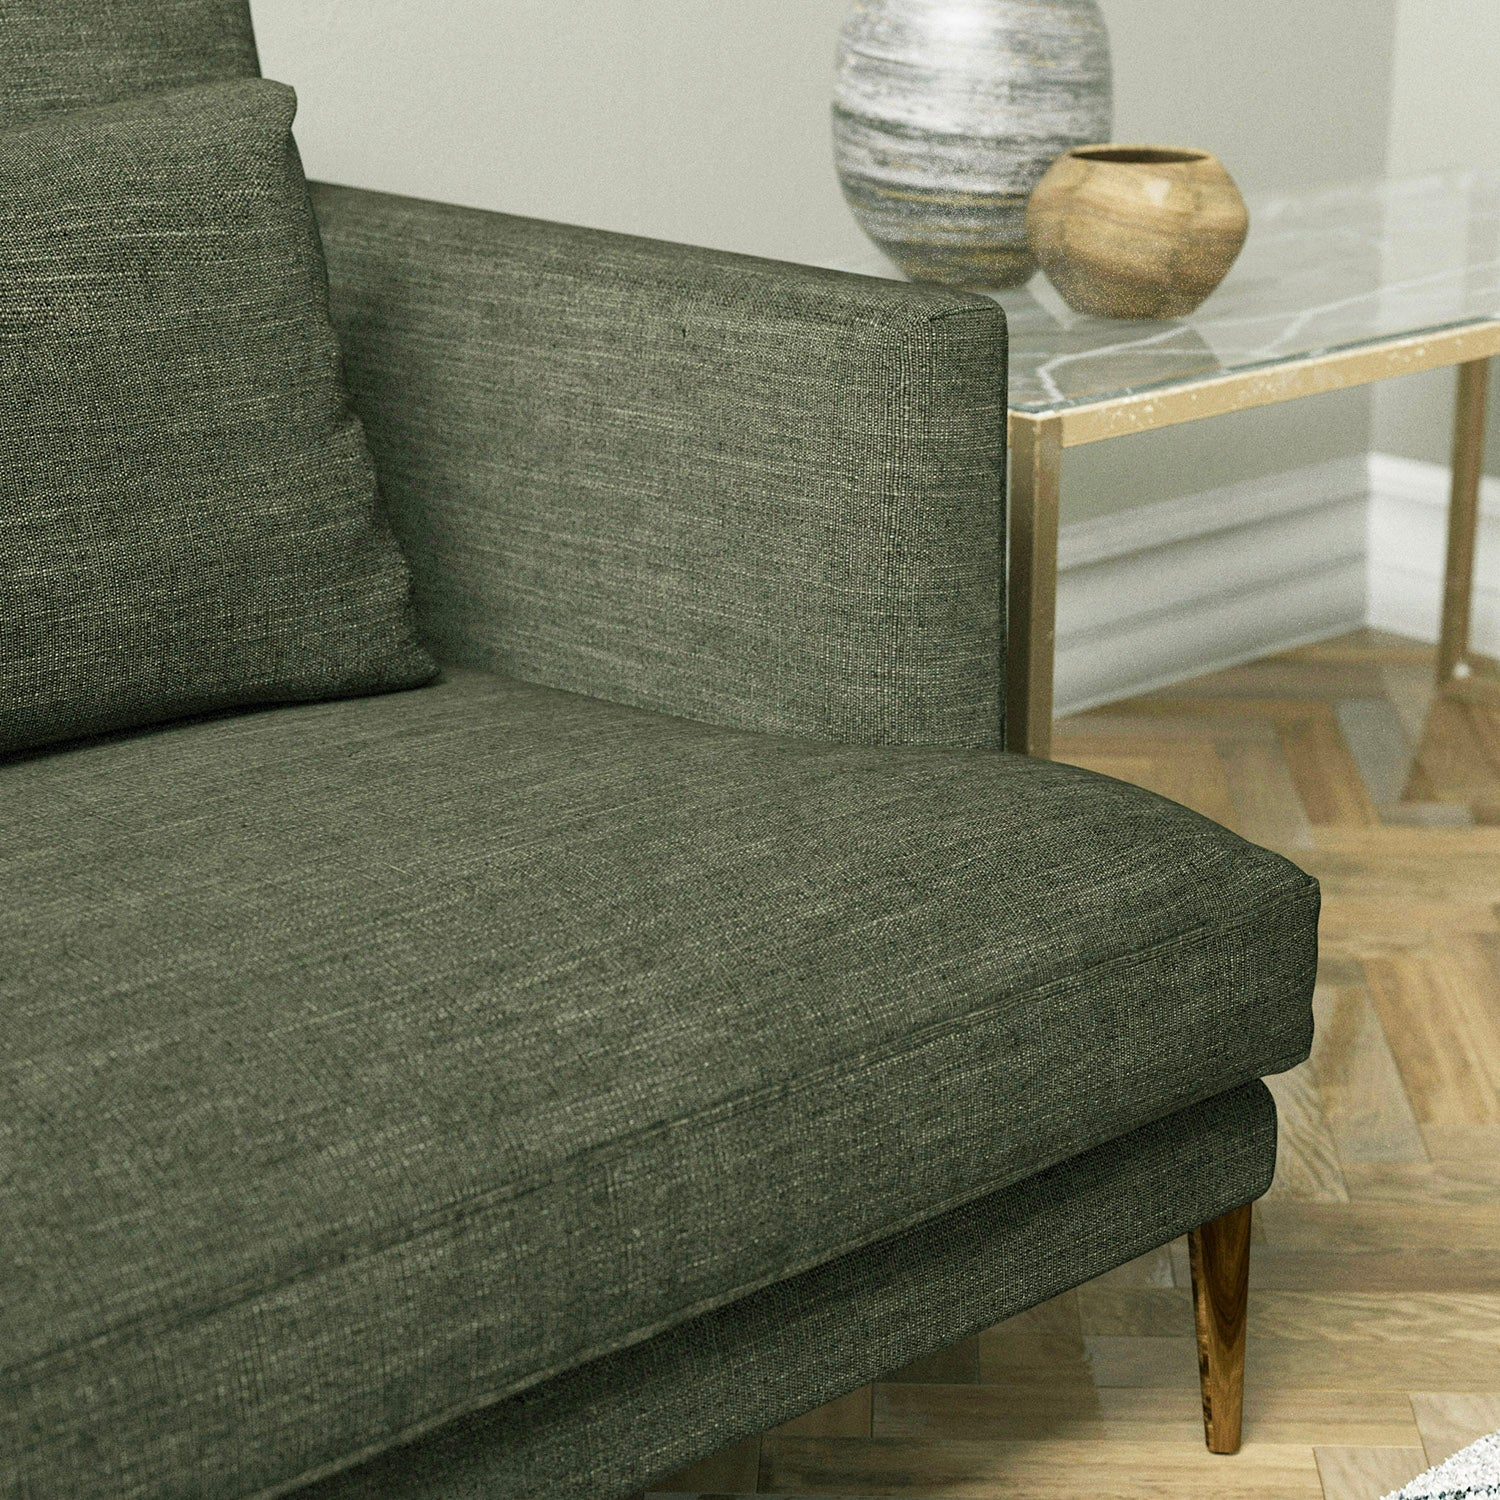 Sofa in a grey linen mix upholstery fabric